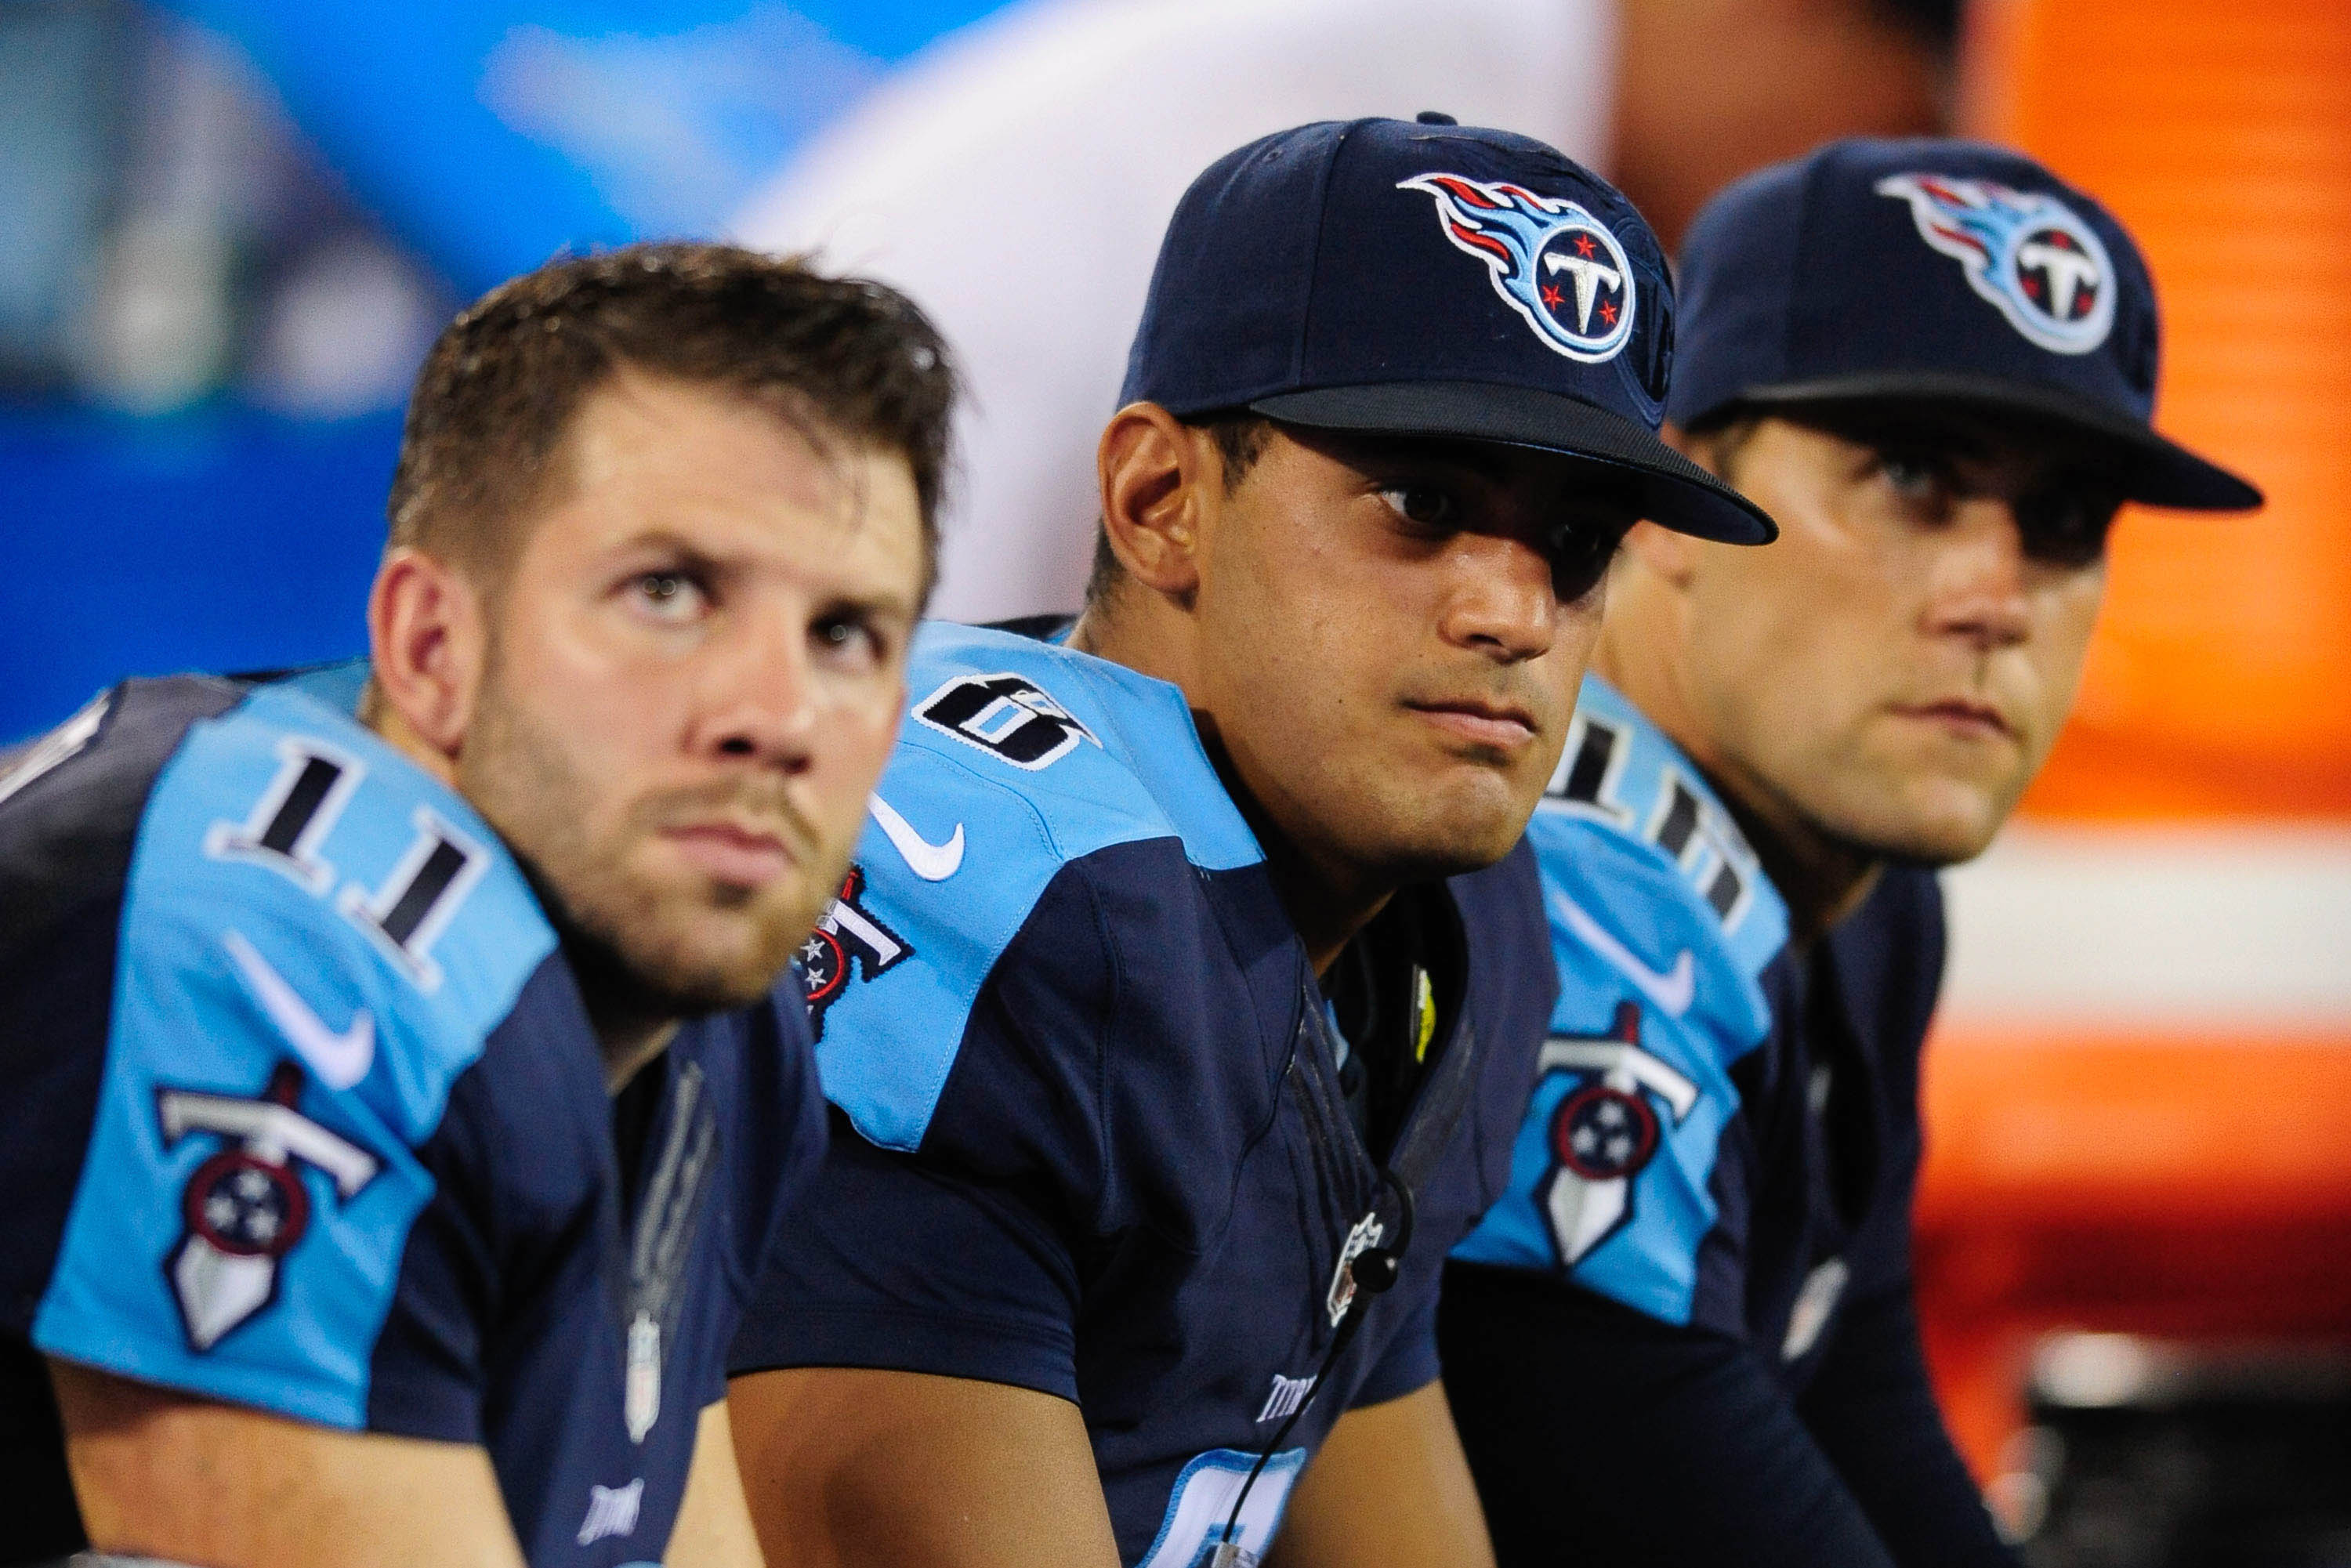 9459954-nfl-preseason-san-diego-chargers-at-tennessee-titans